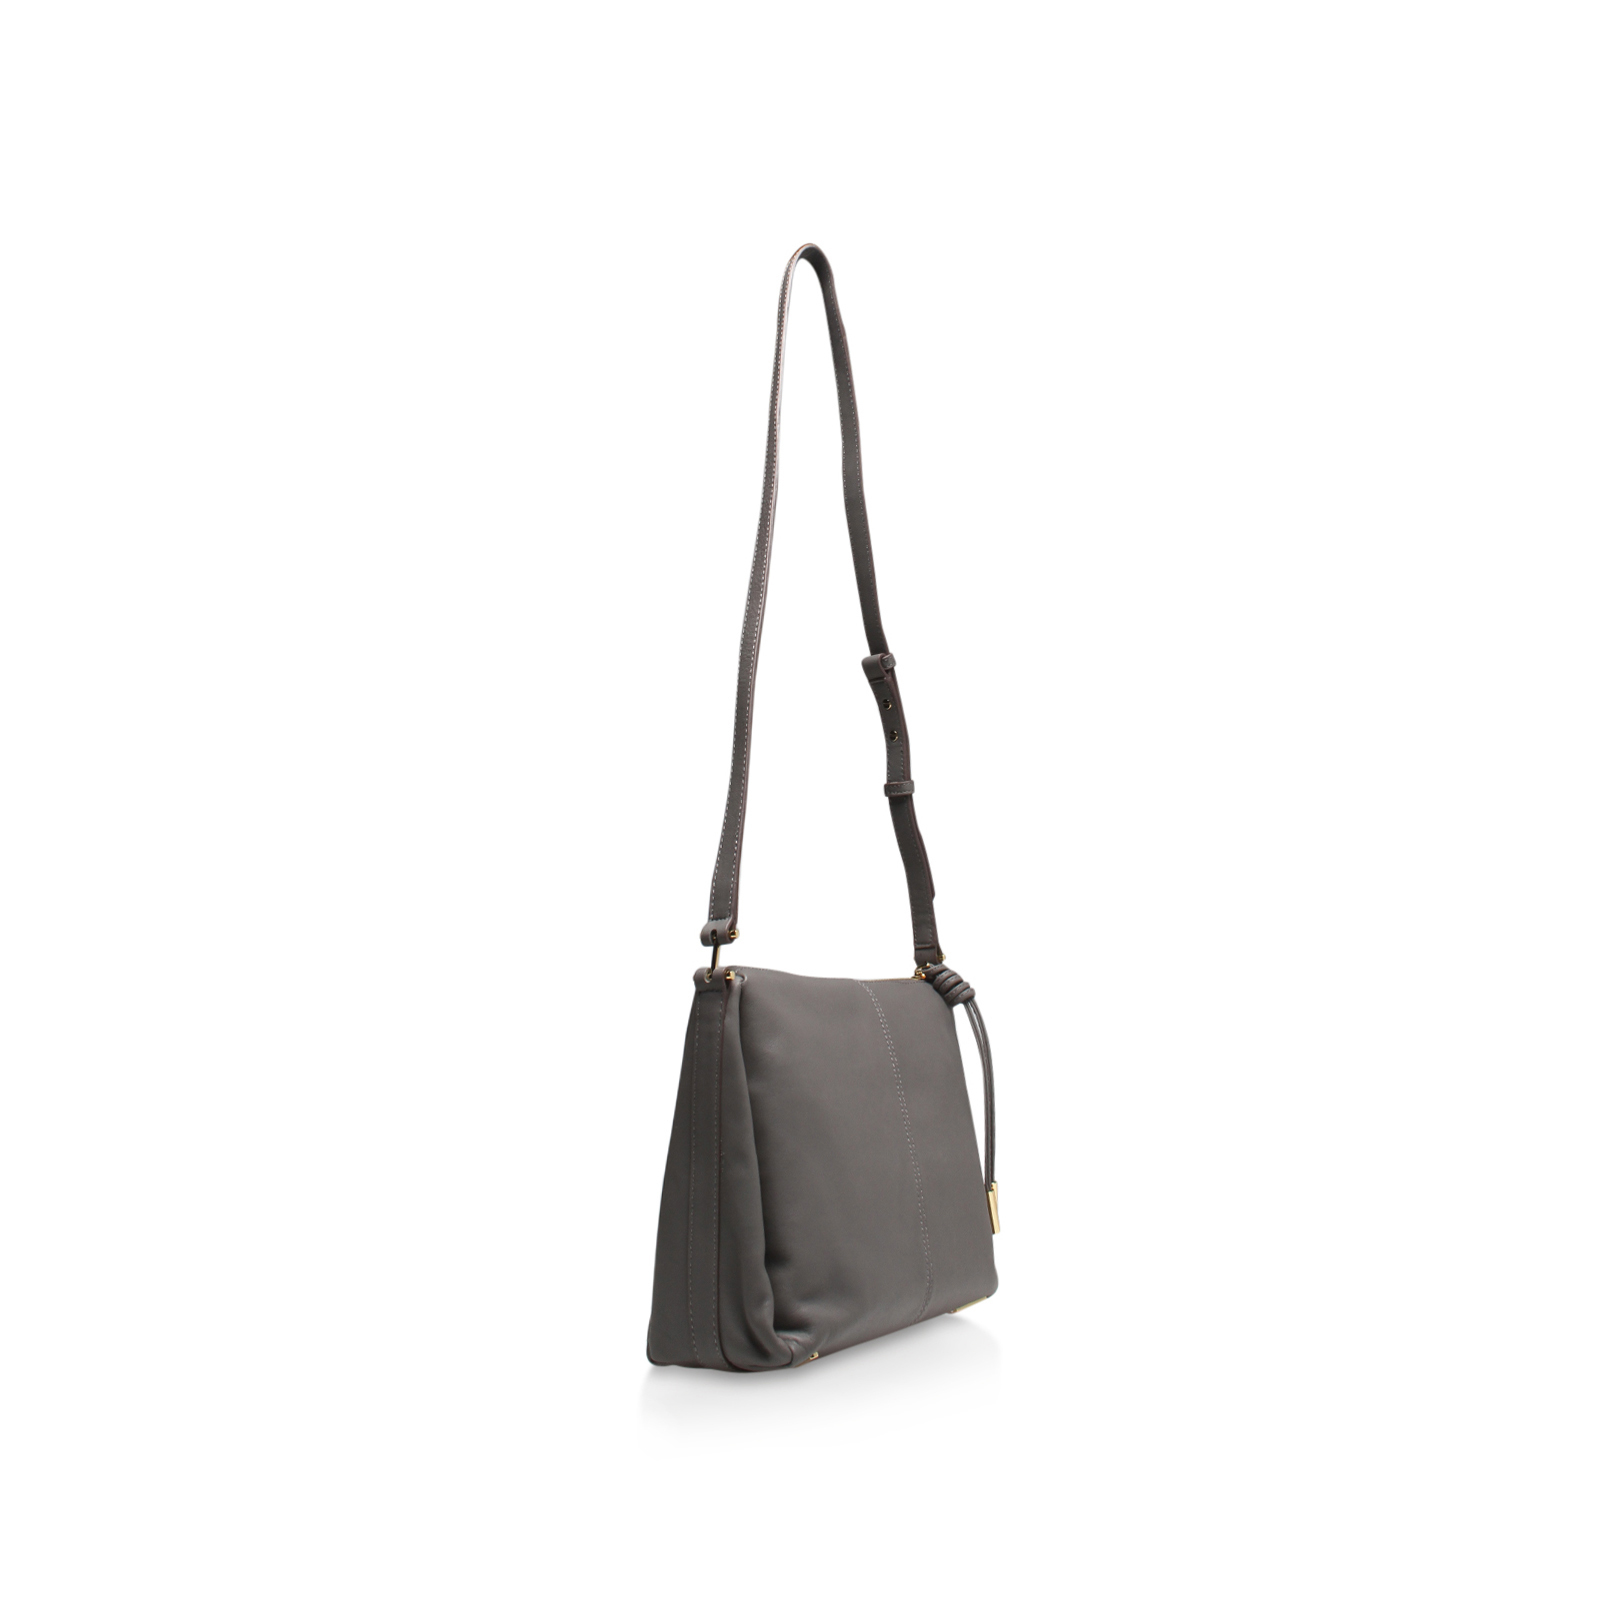 Vince Camuto Leather Josie Crossbody in Grey (Grey)